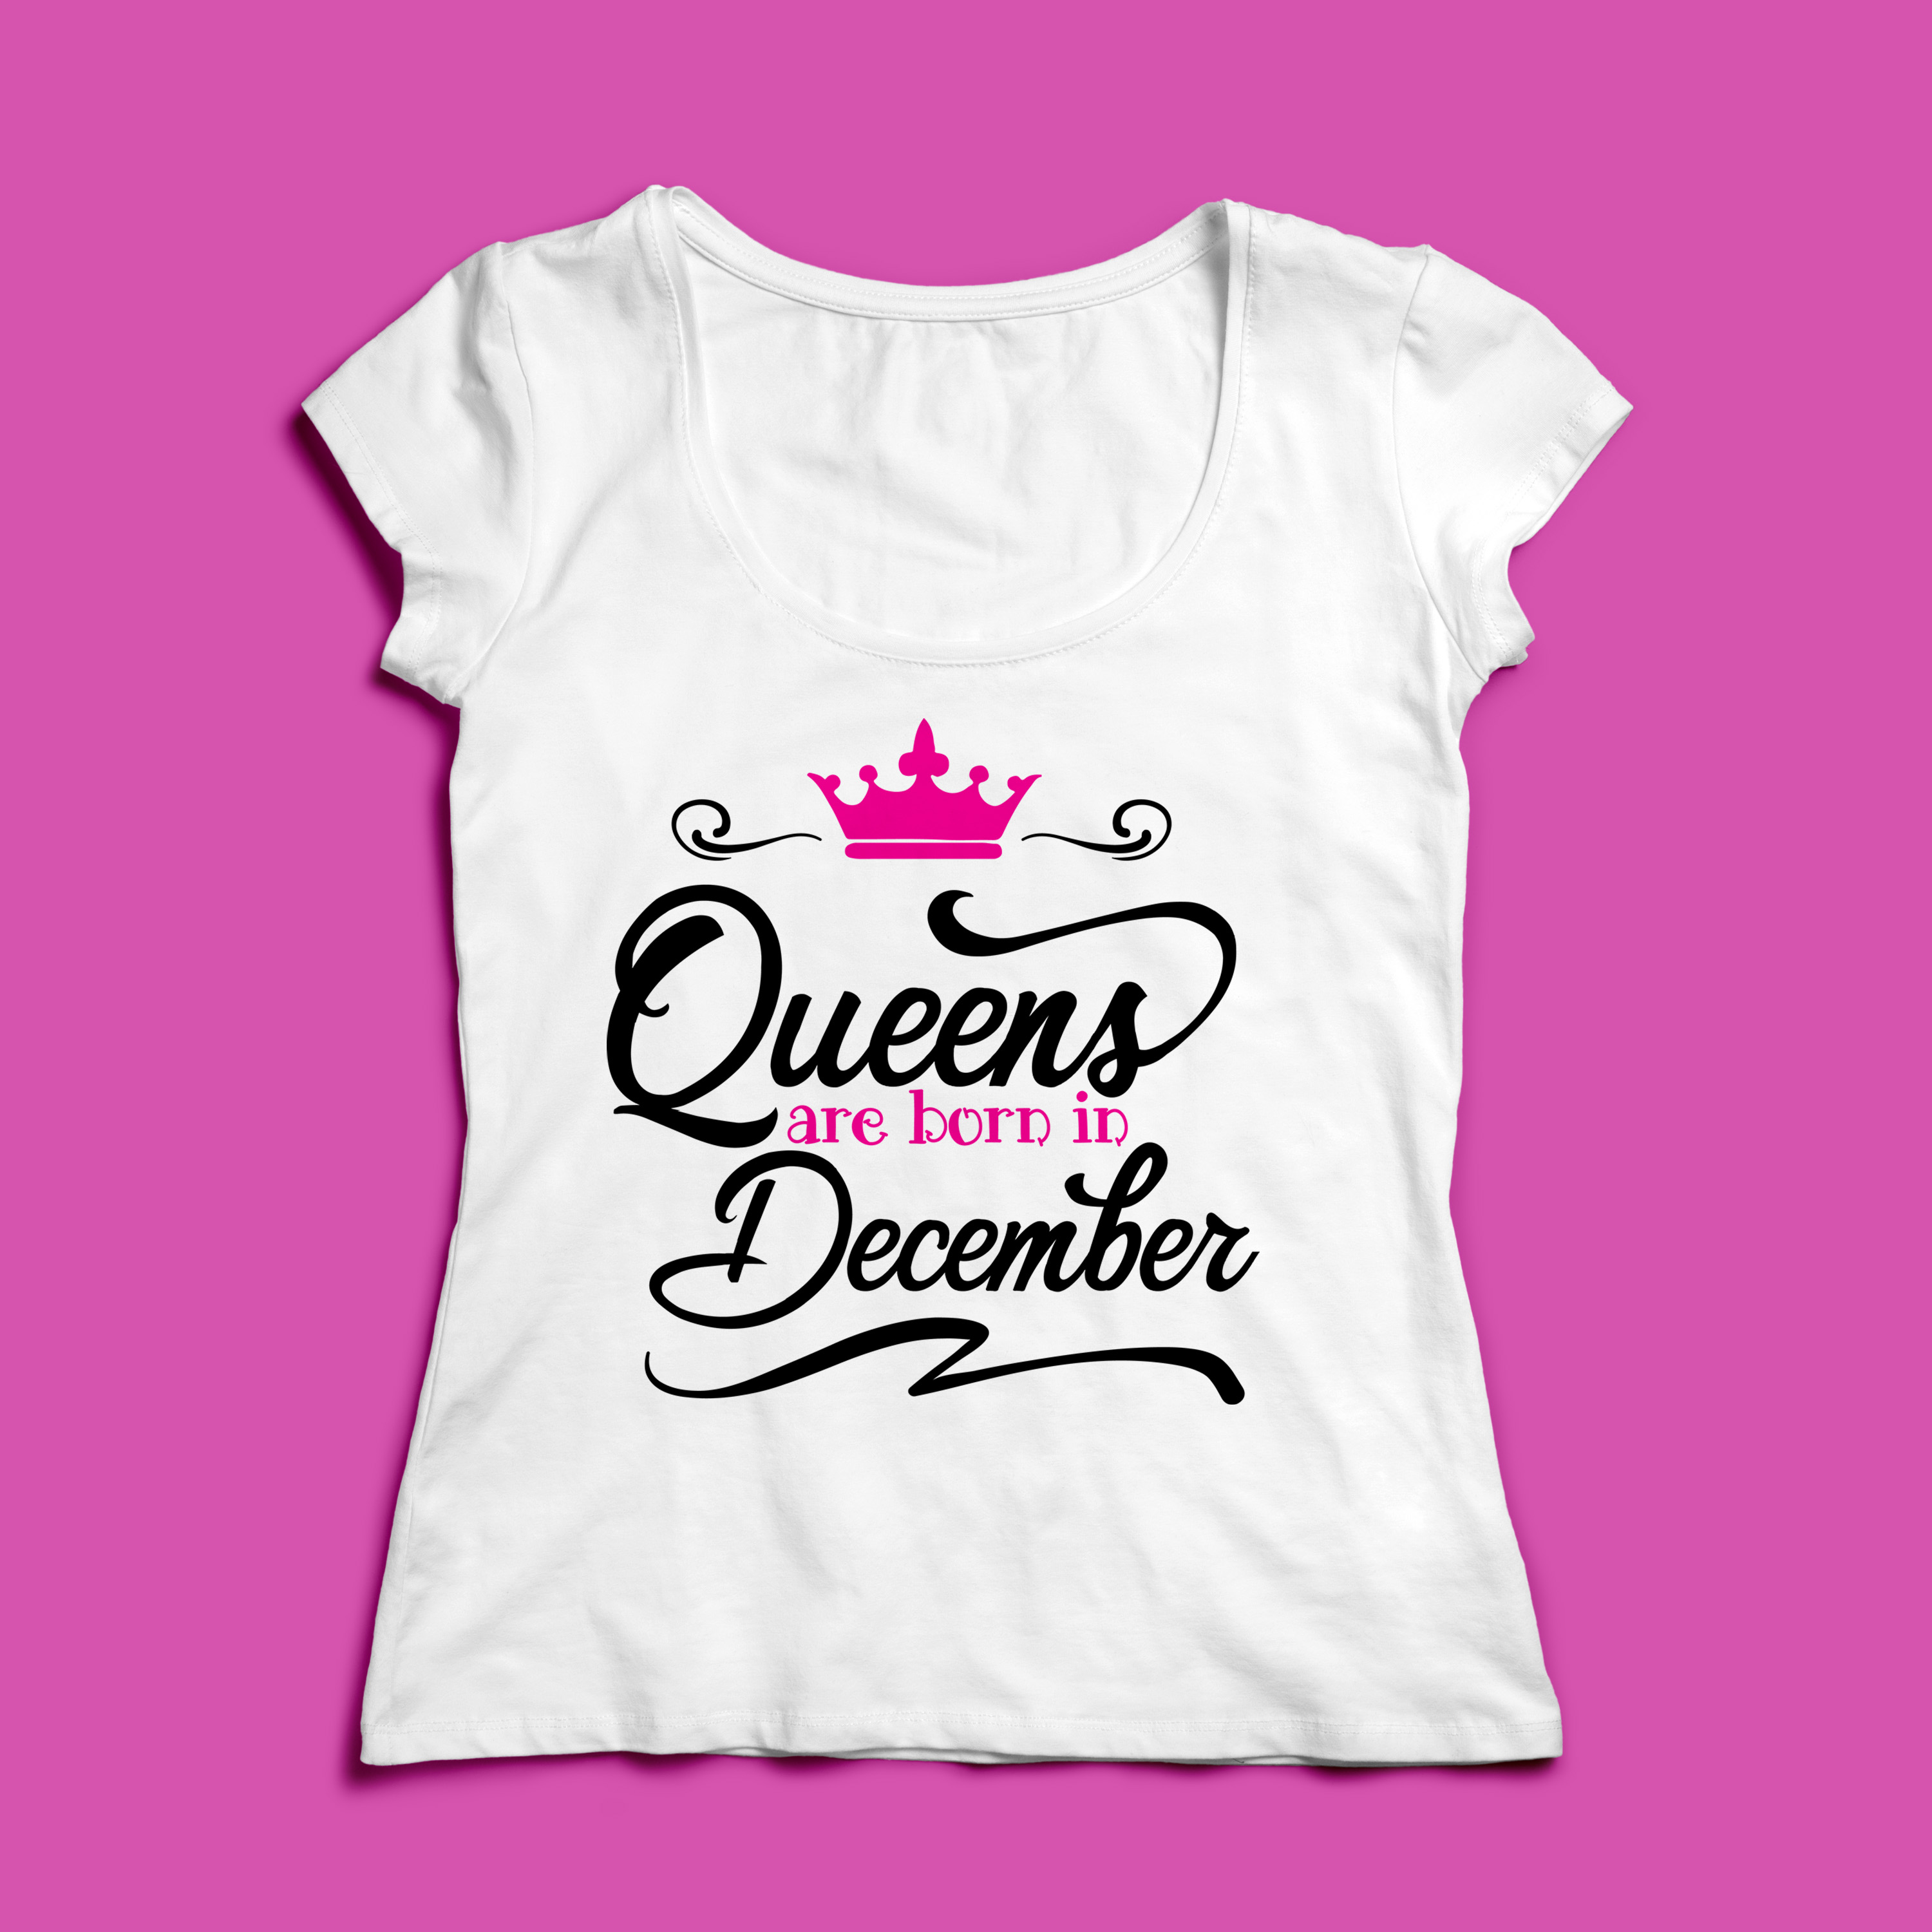 Queens are born in ... Every 12 months Svg,Dxf,Png,Jpg,Eps v example image 4